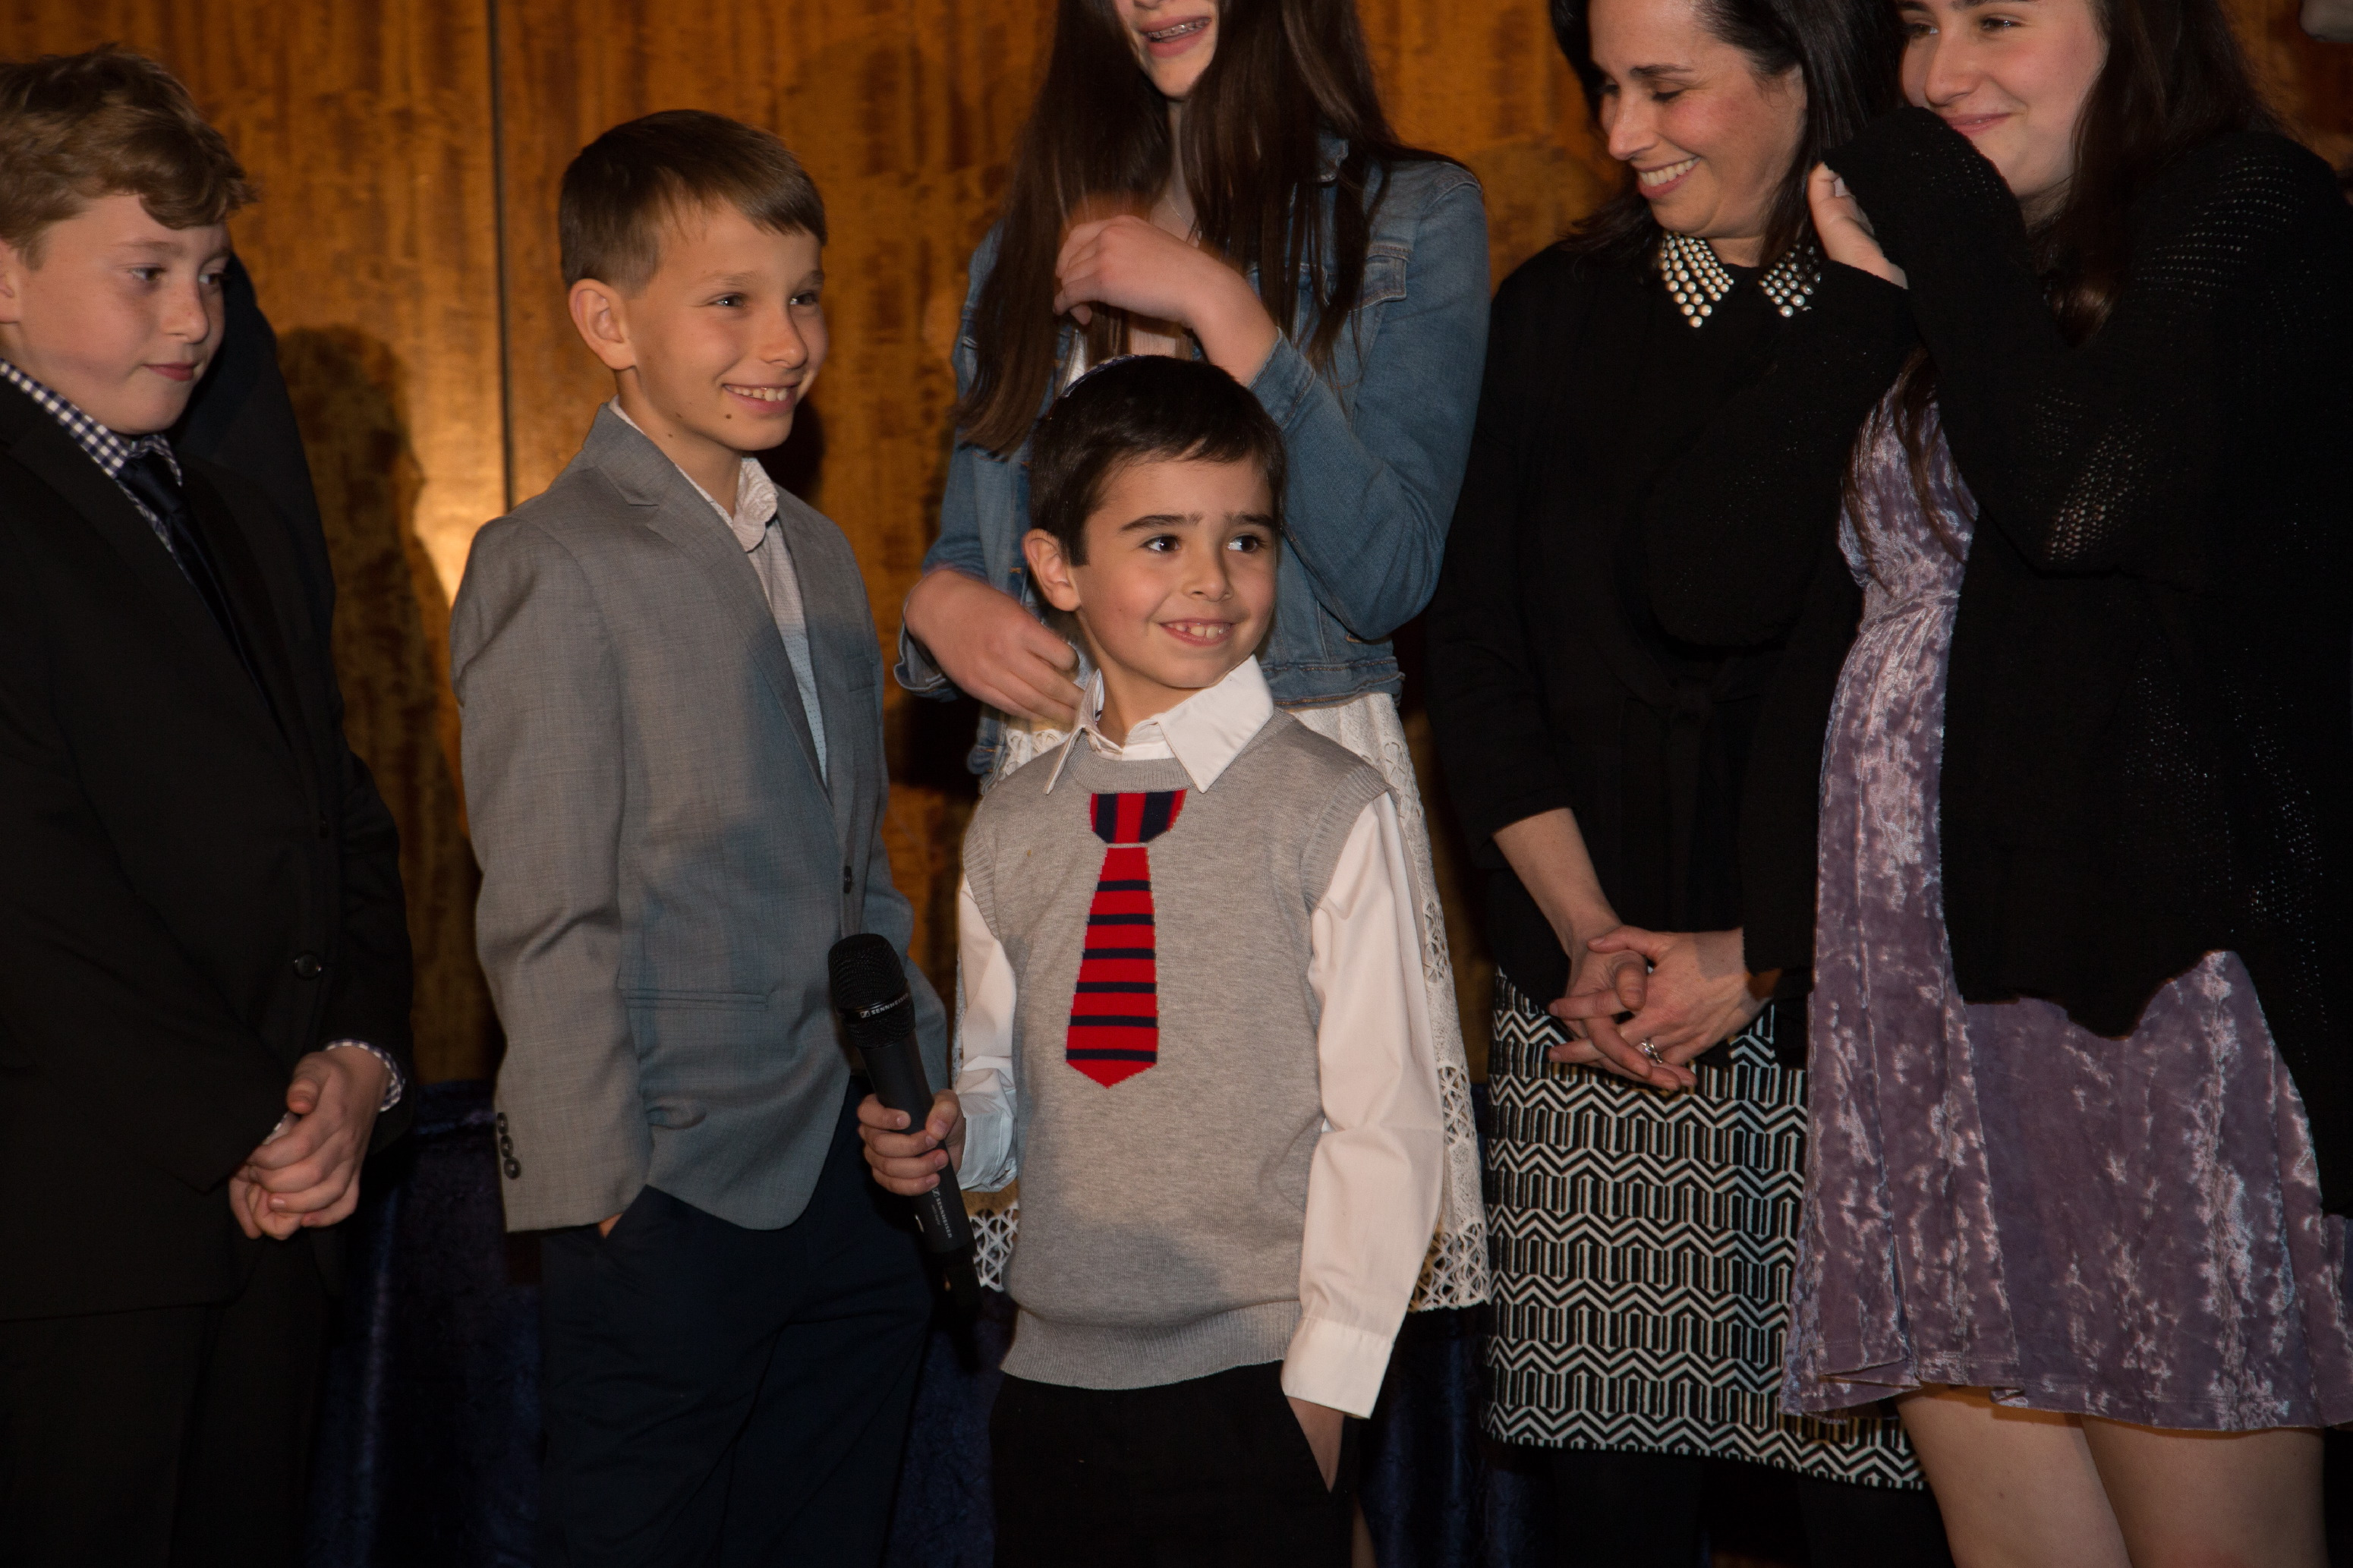 Children and grandchildren of Honorees leading the Motzi